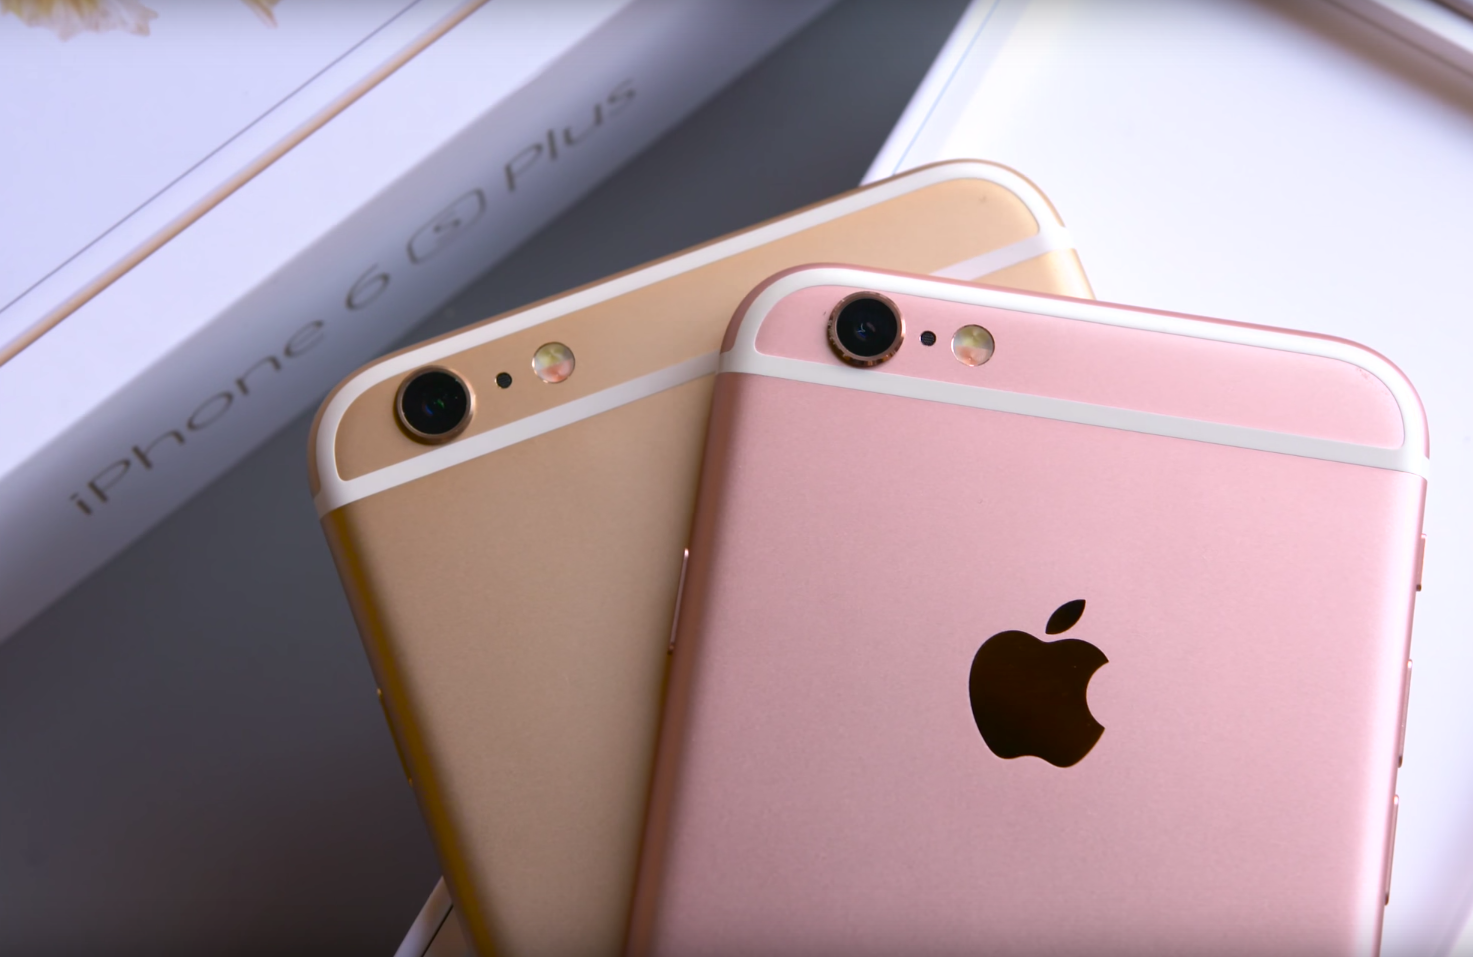 Iphone 6s Adoption Seen As Lower Than The Iphone 6 But